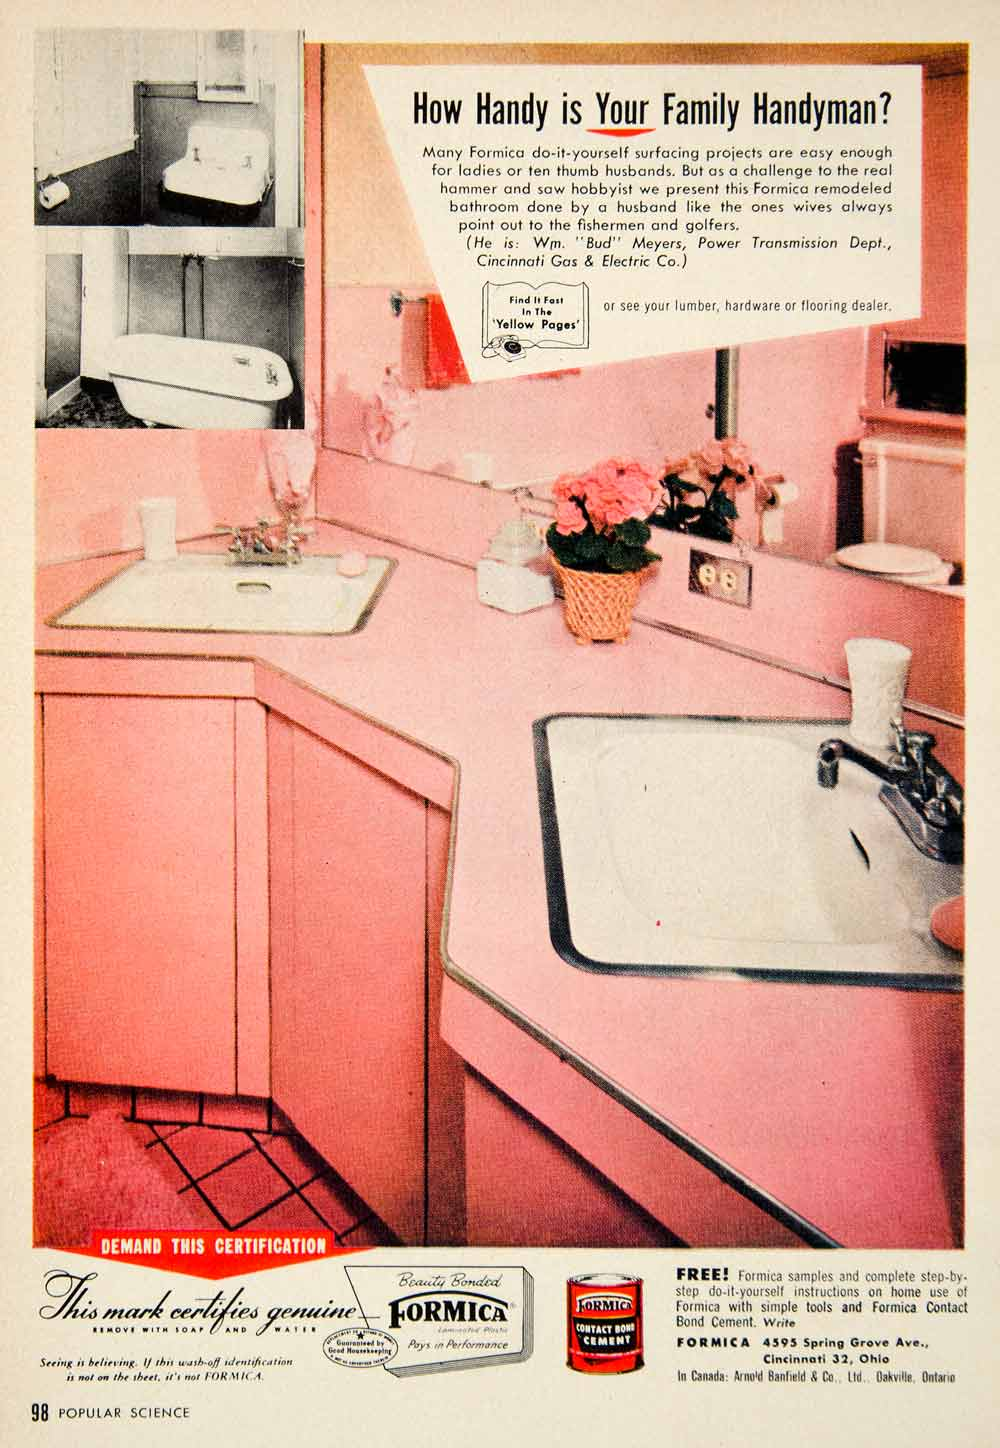 1955 Ad Formica Household Laminate Bathroom 4595 Spring Grove Ave PSC3